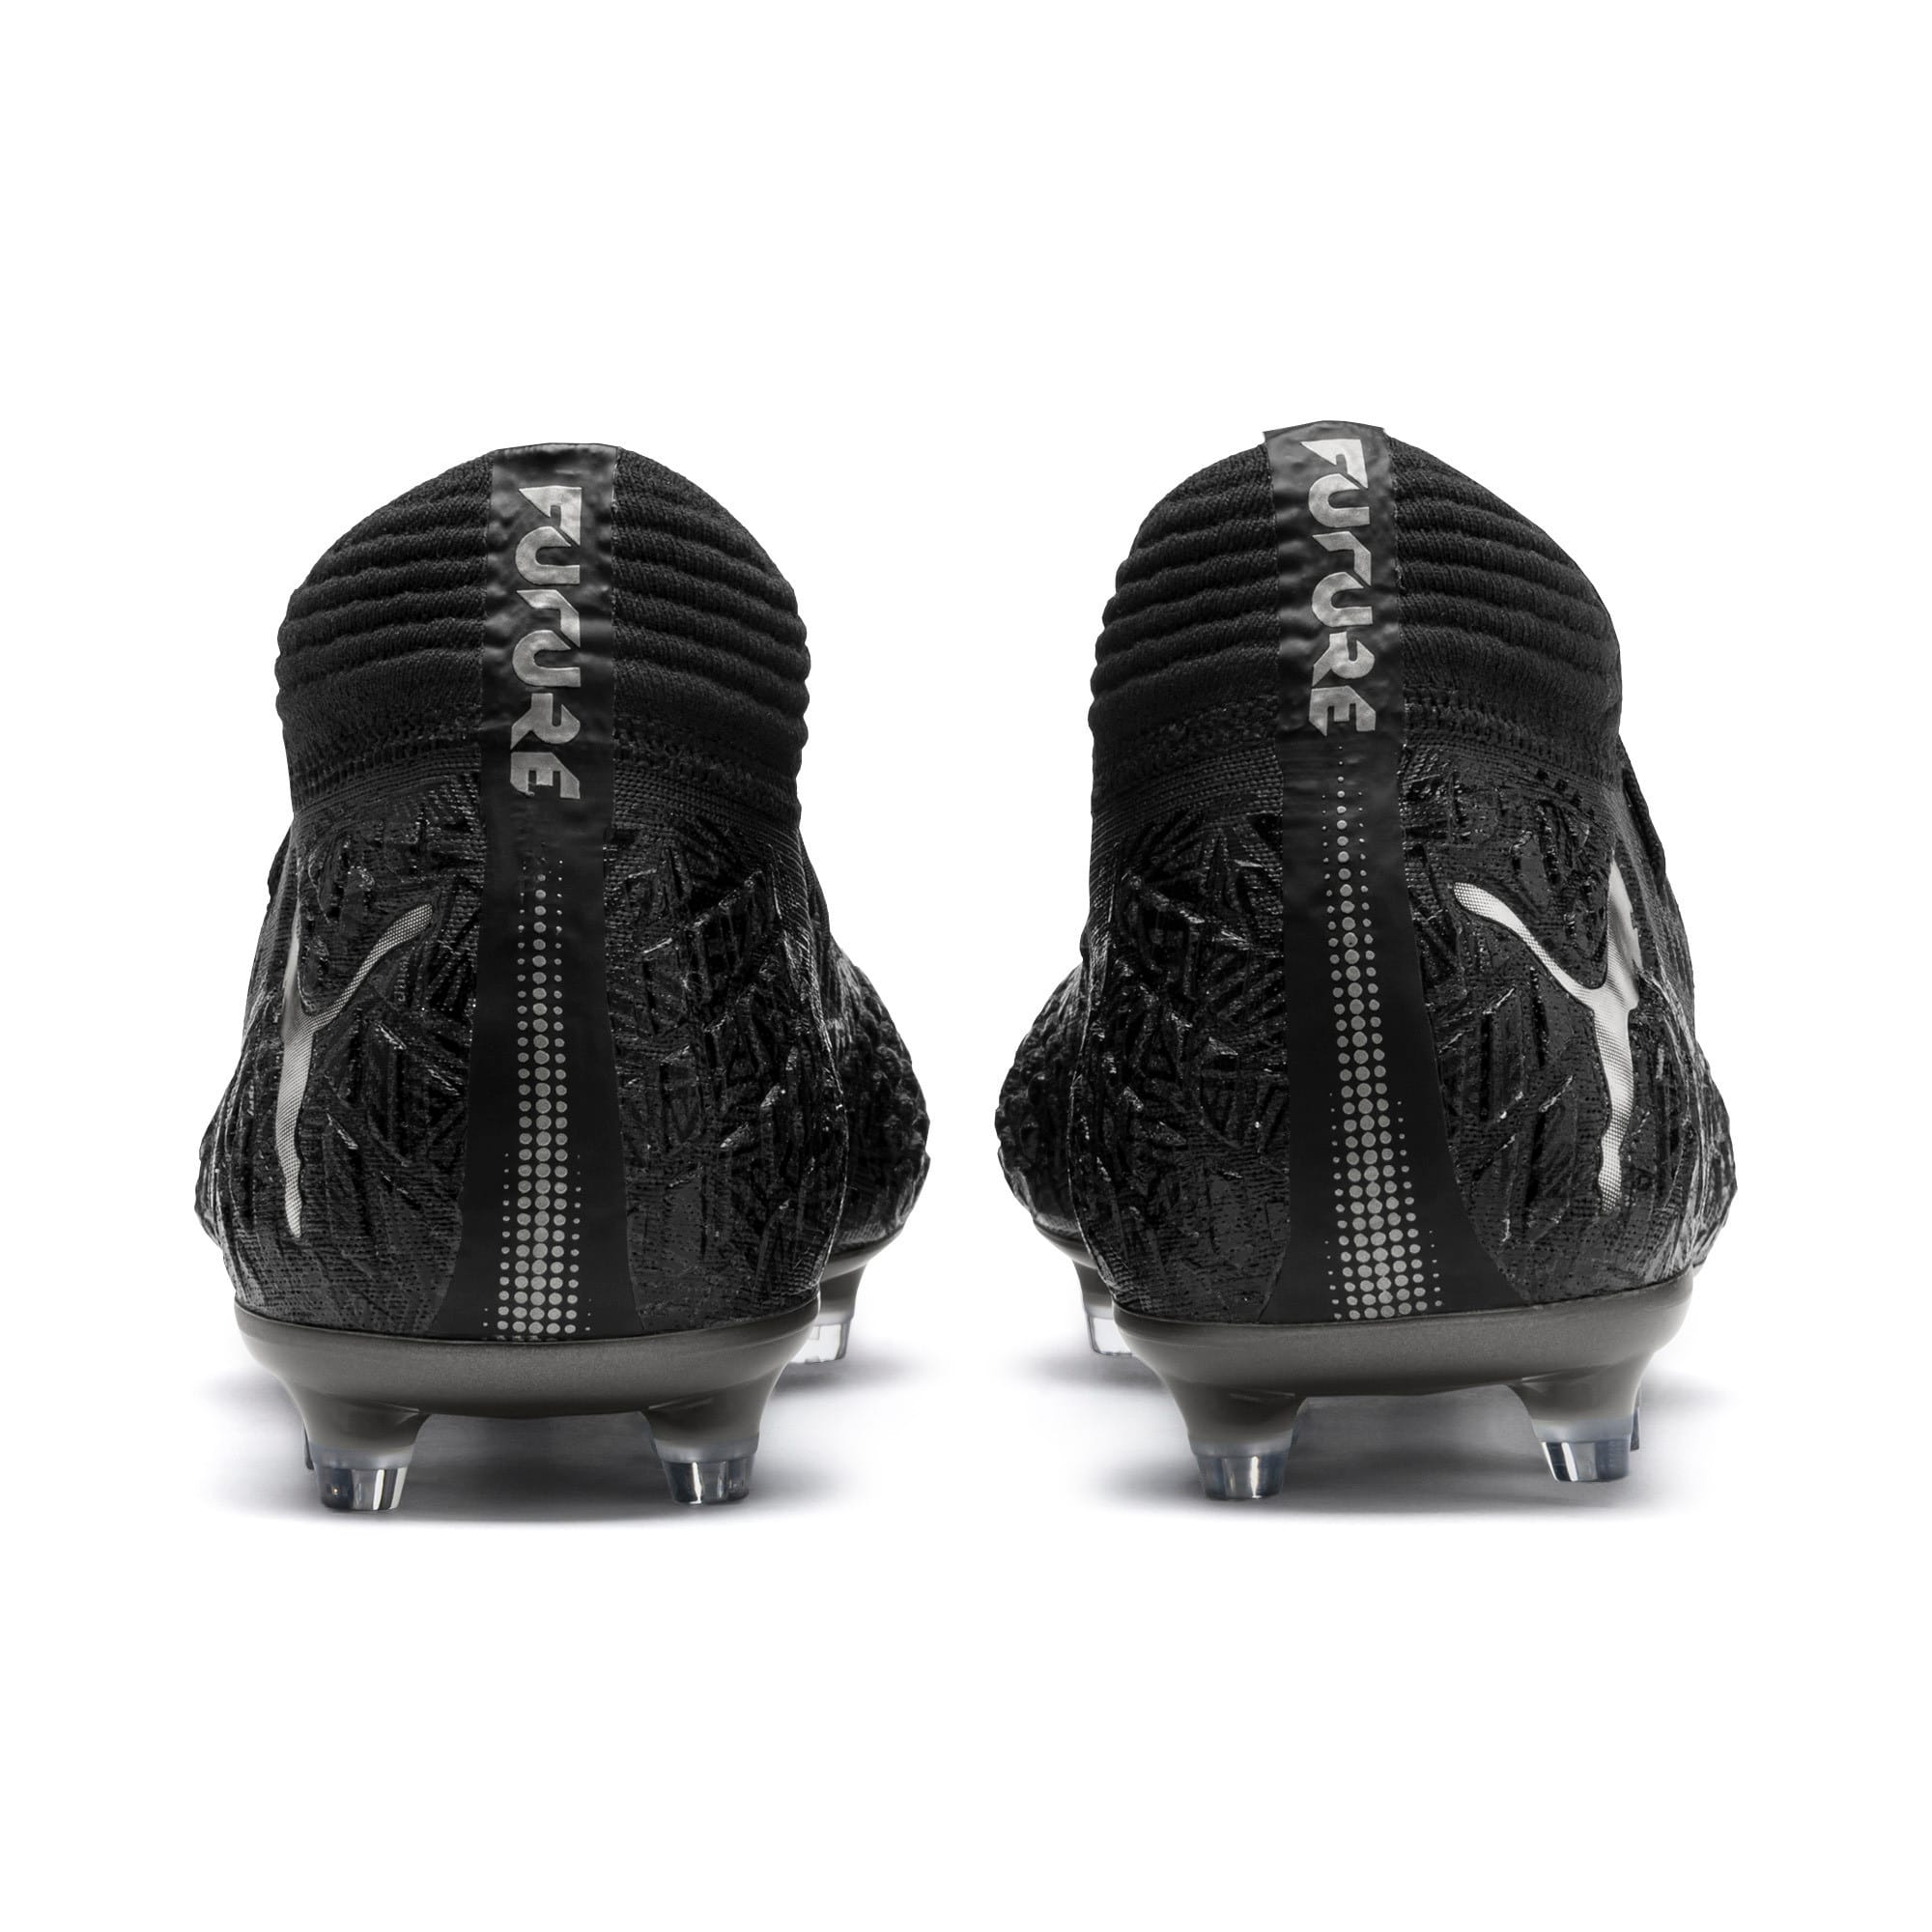 Thumbnail 4 of FUTURE 4.1 NETFIT FG/AG Men's Football Boots, Black-Black-Puma Aged Silver, medium